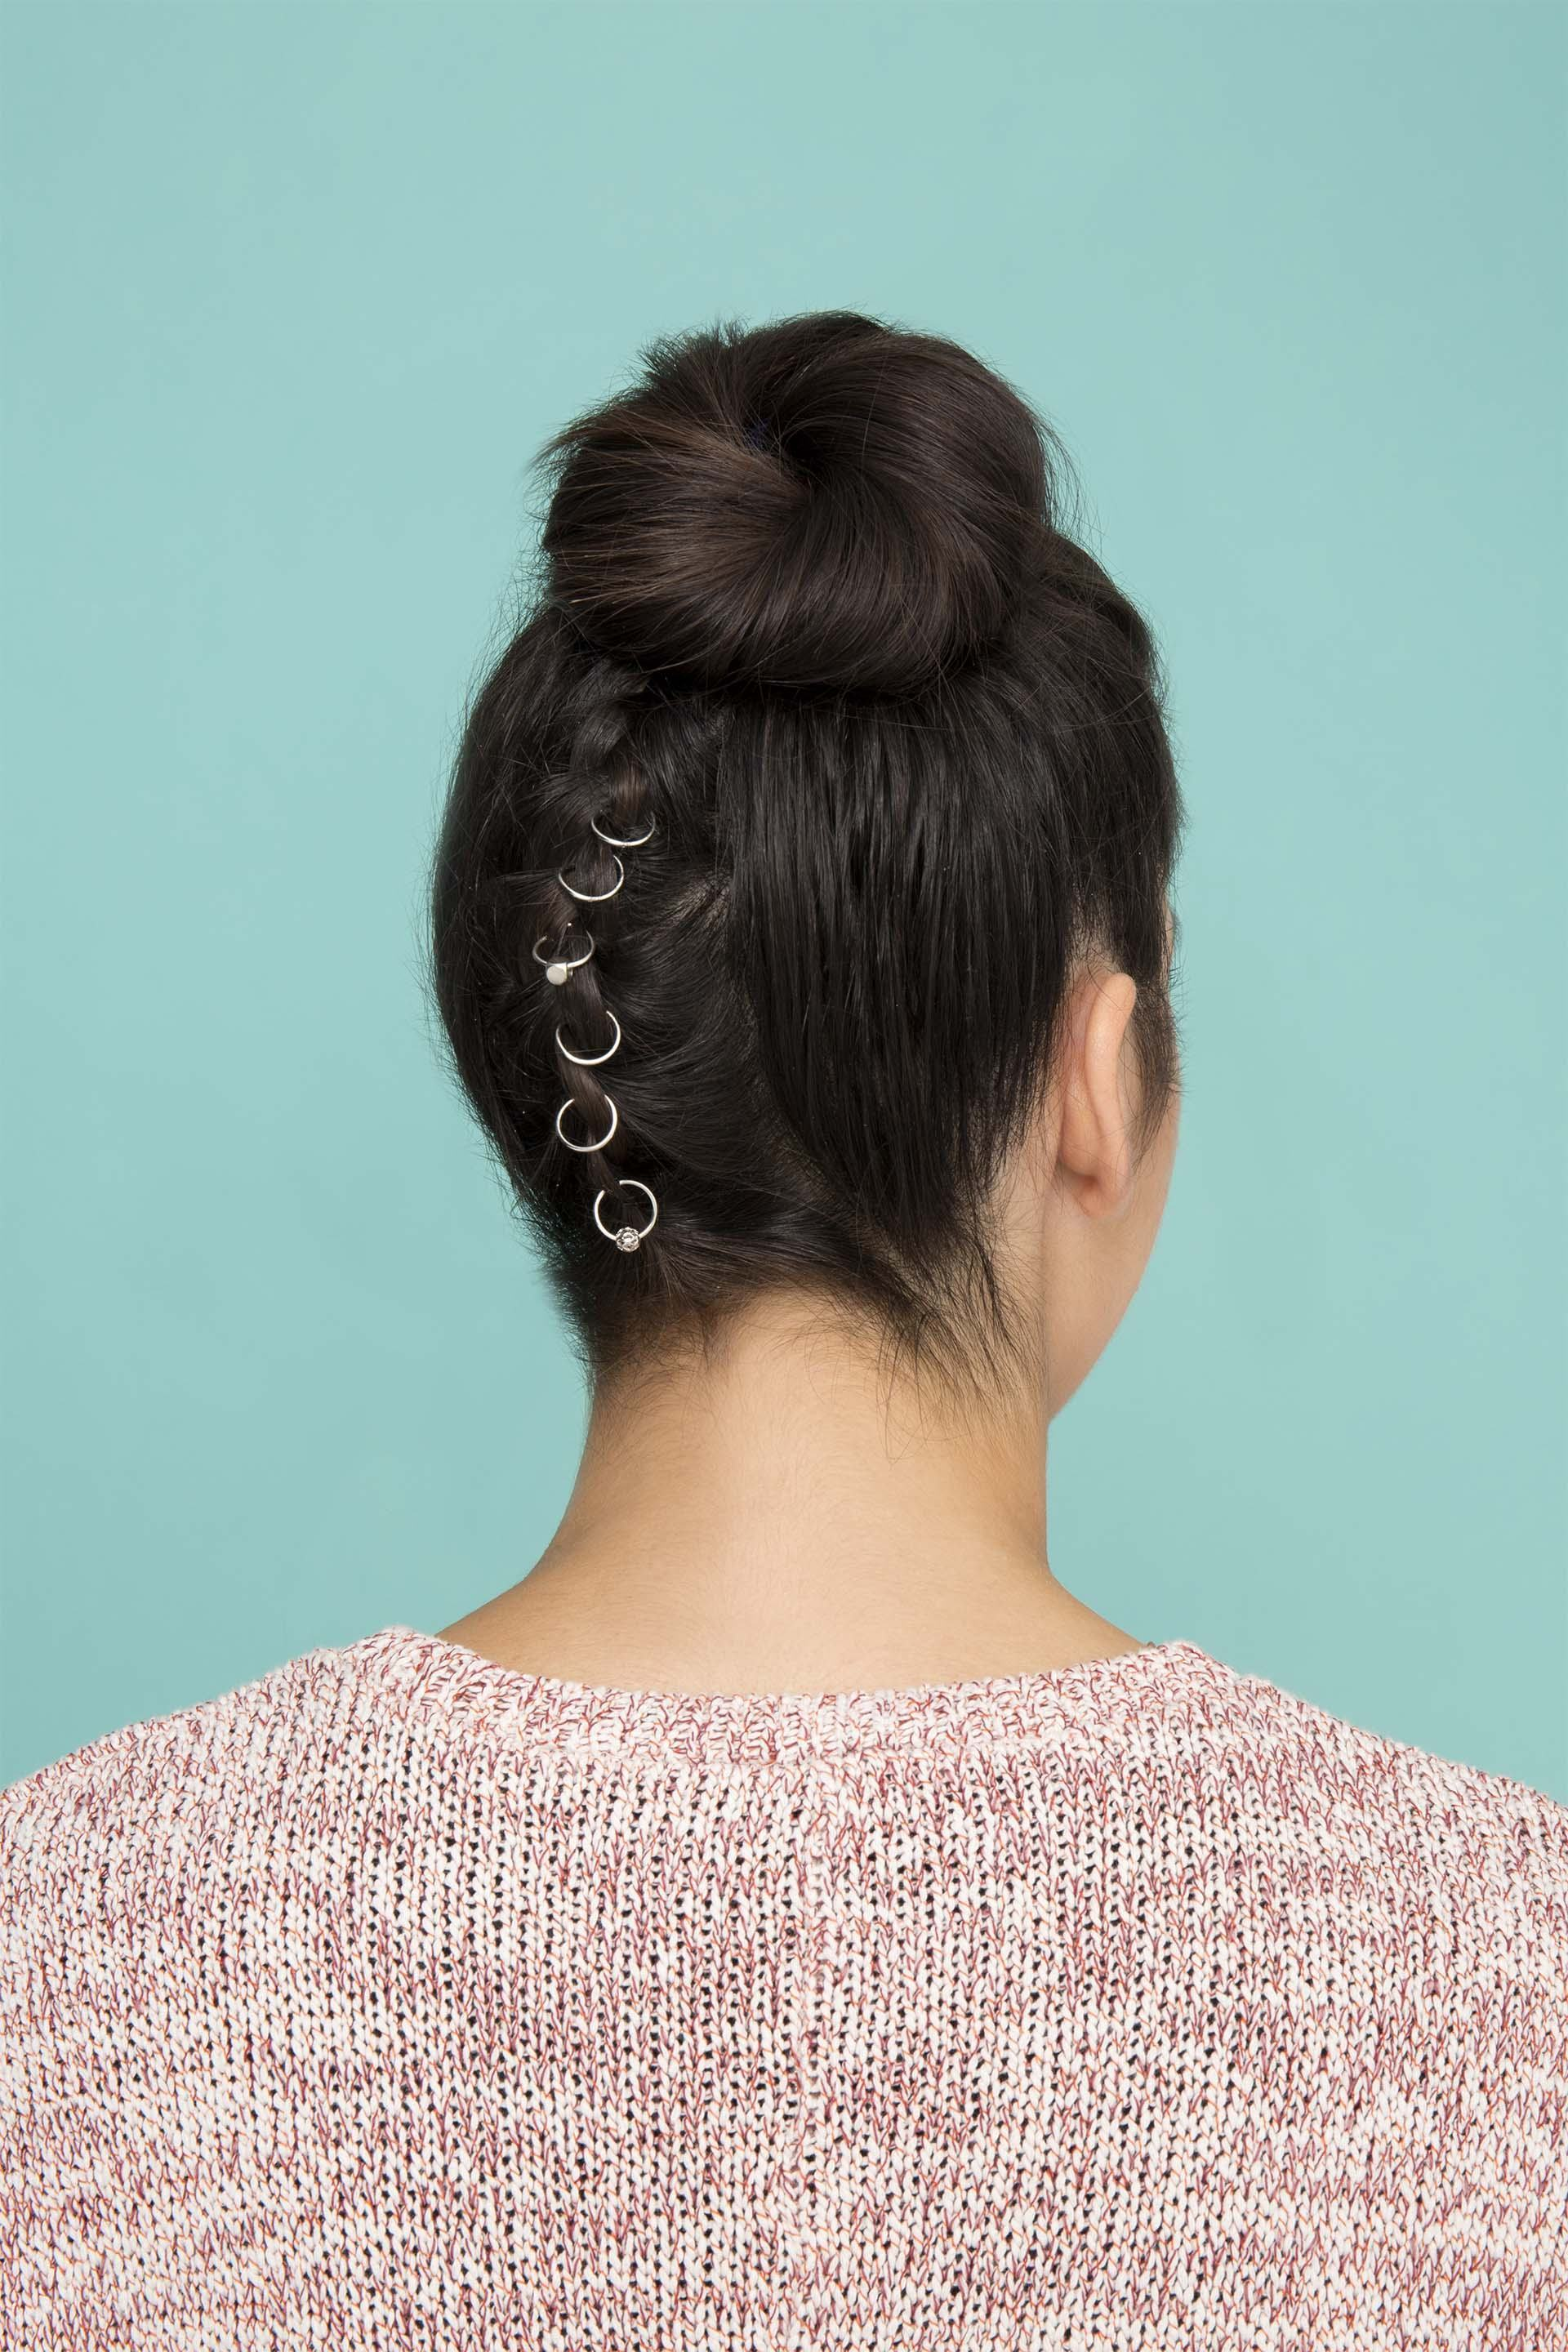 spring hair accessories: braid rings